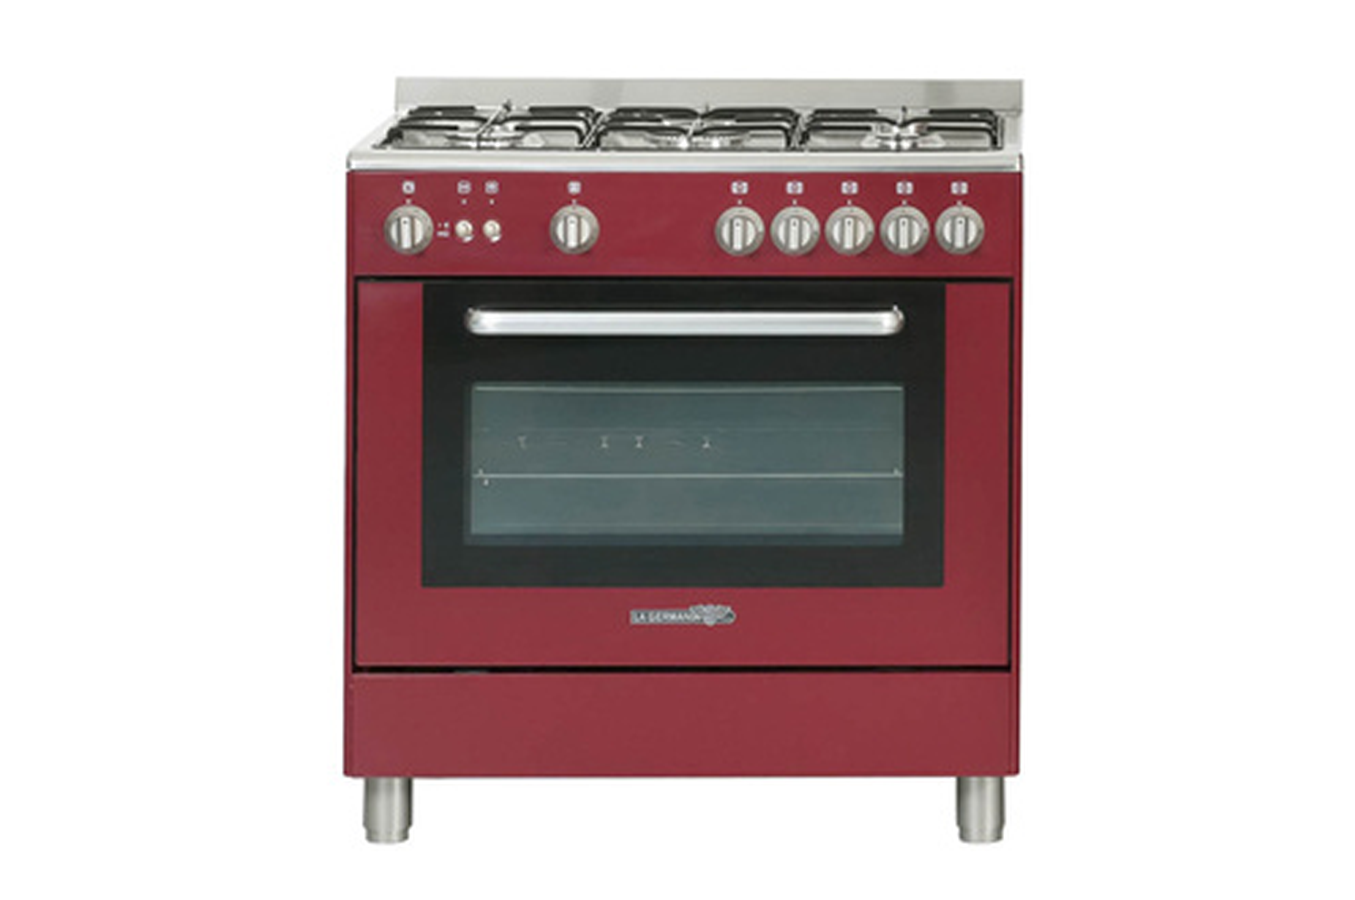 Piano de cuisson la germania t85c20vidt rouge 3557677 for Piano pour cuisine